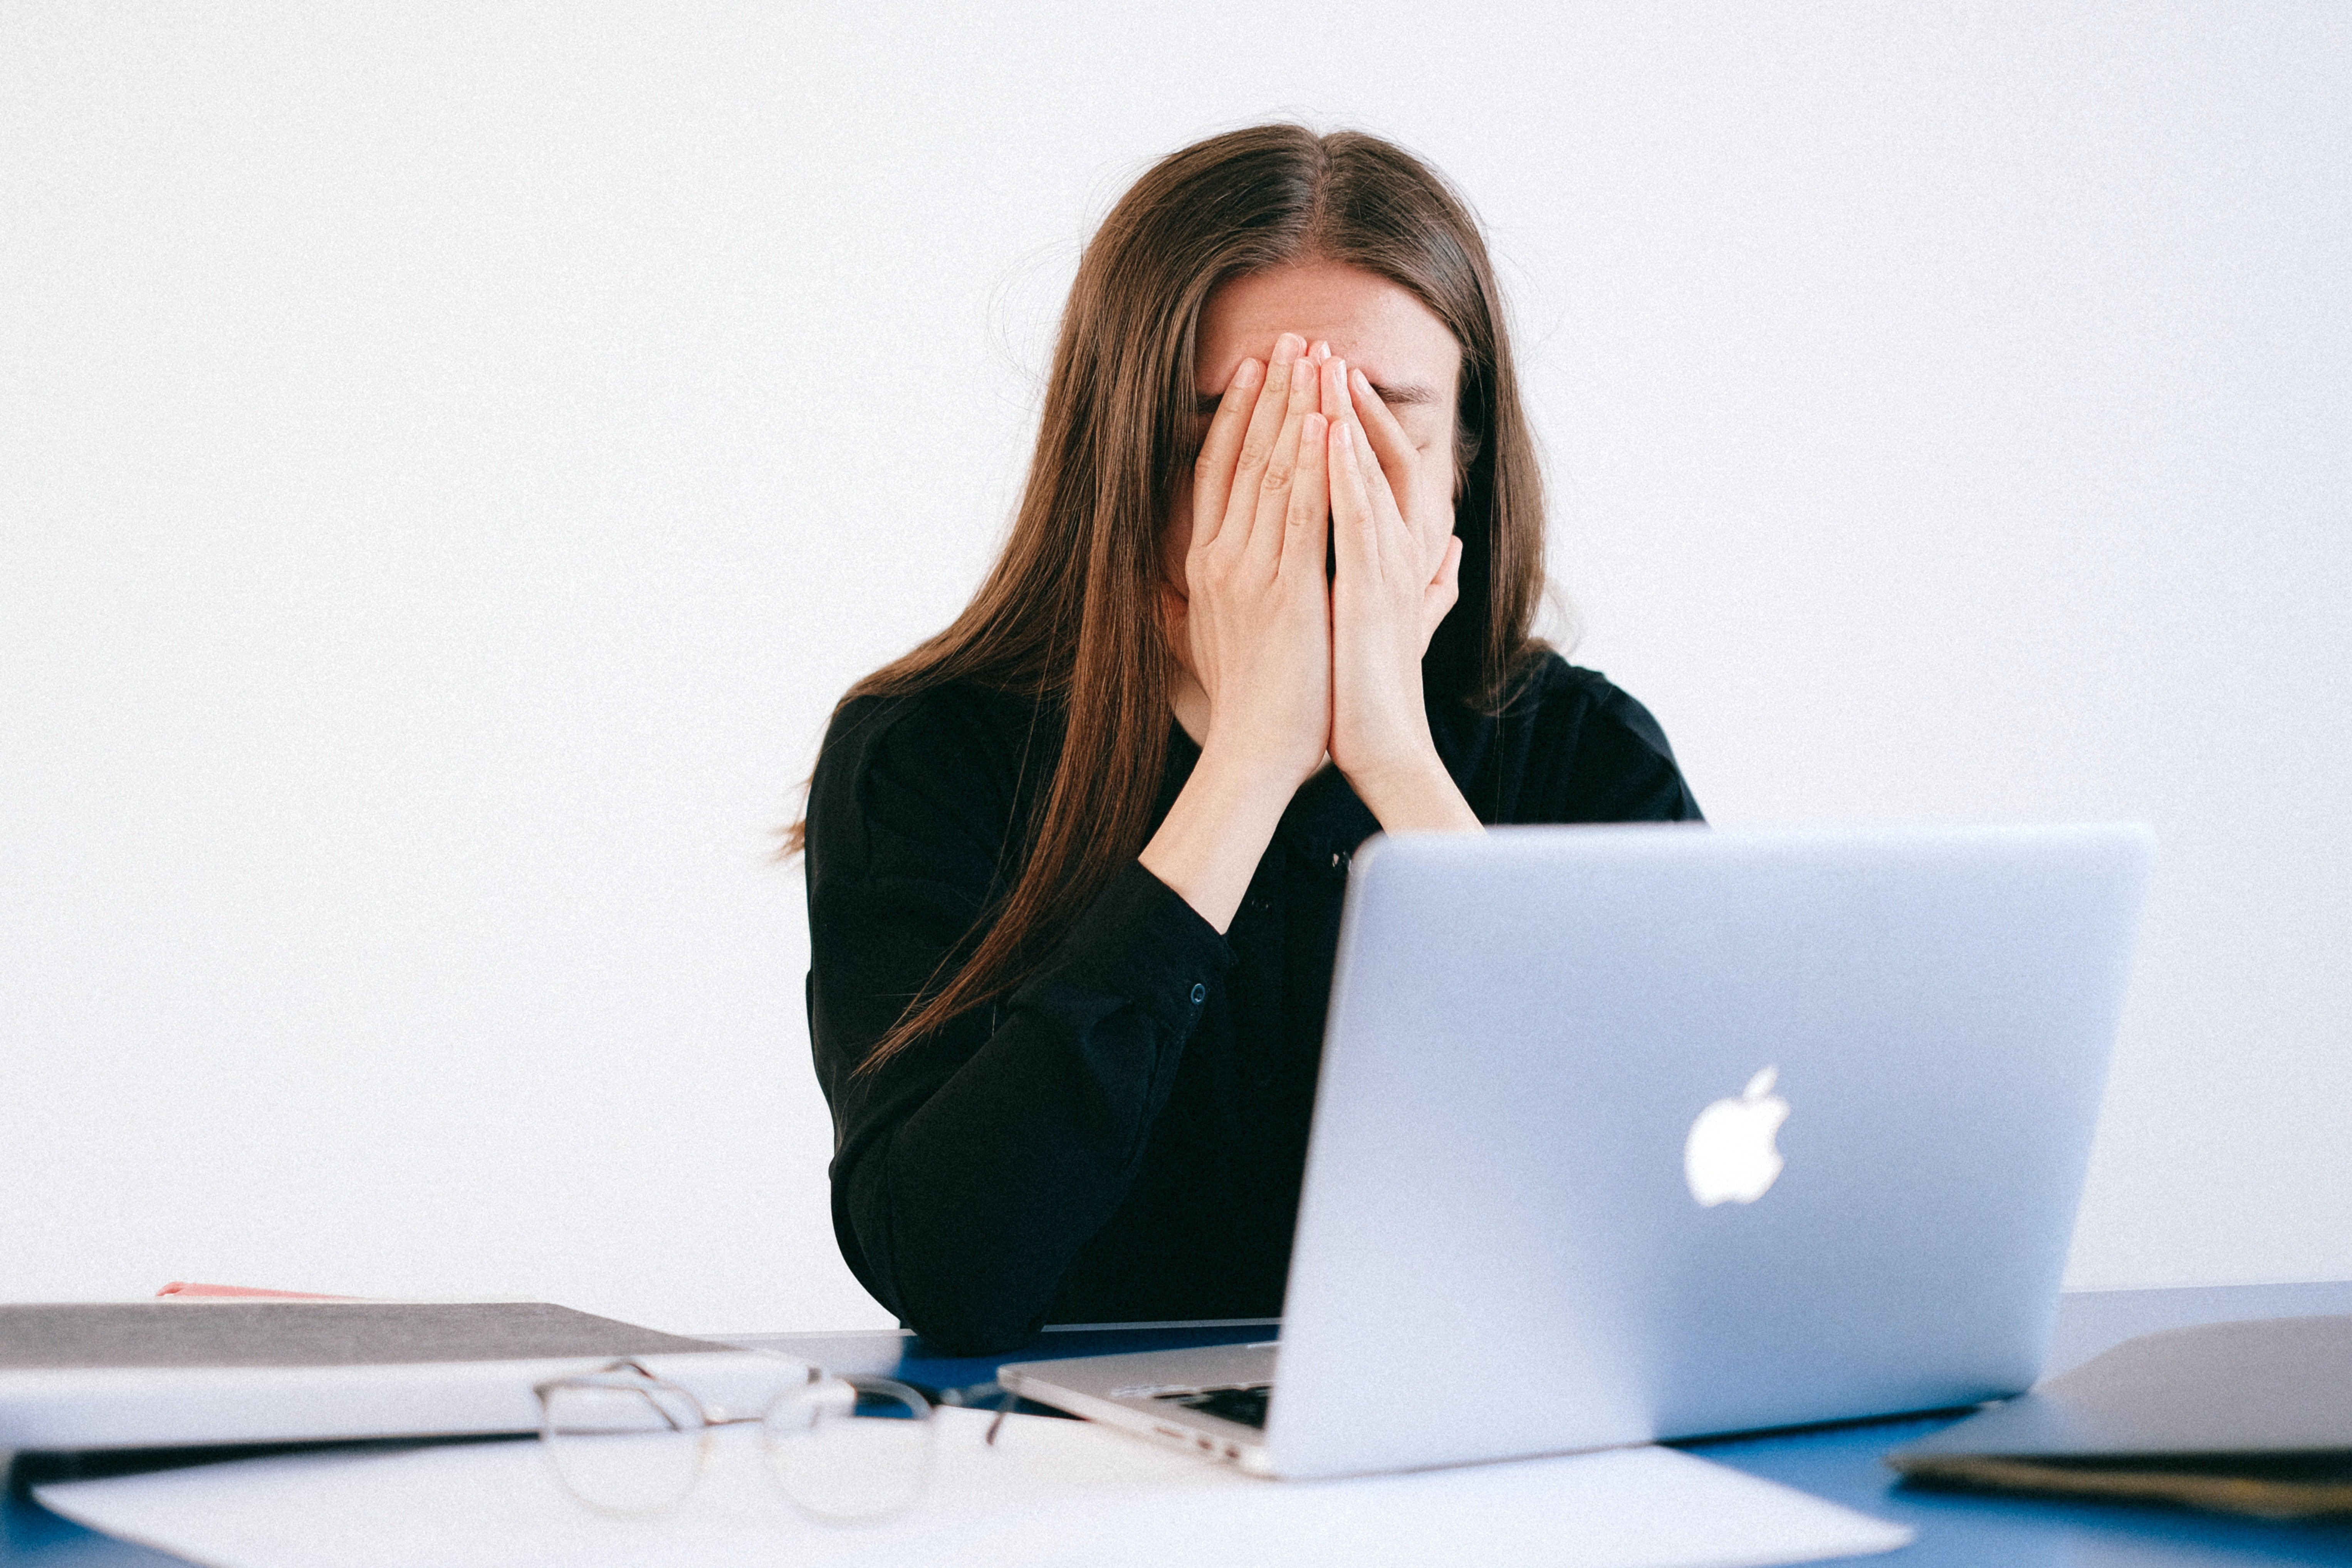 Depressed woman hiding her face | Photo: Pexels